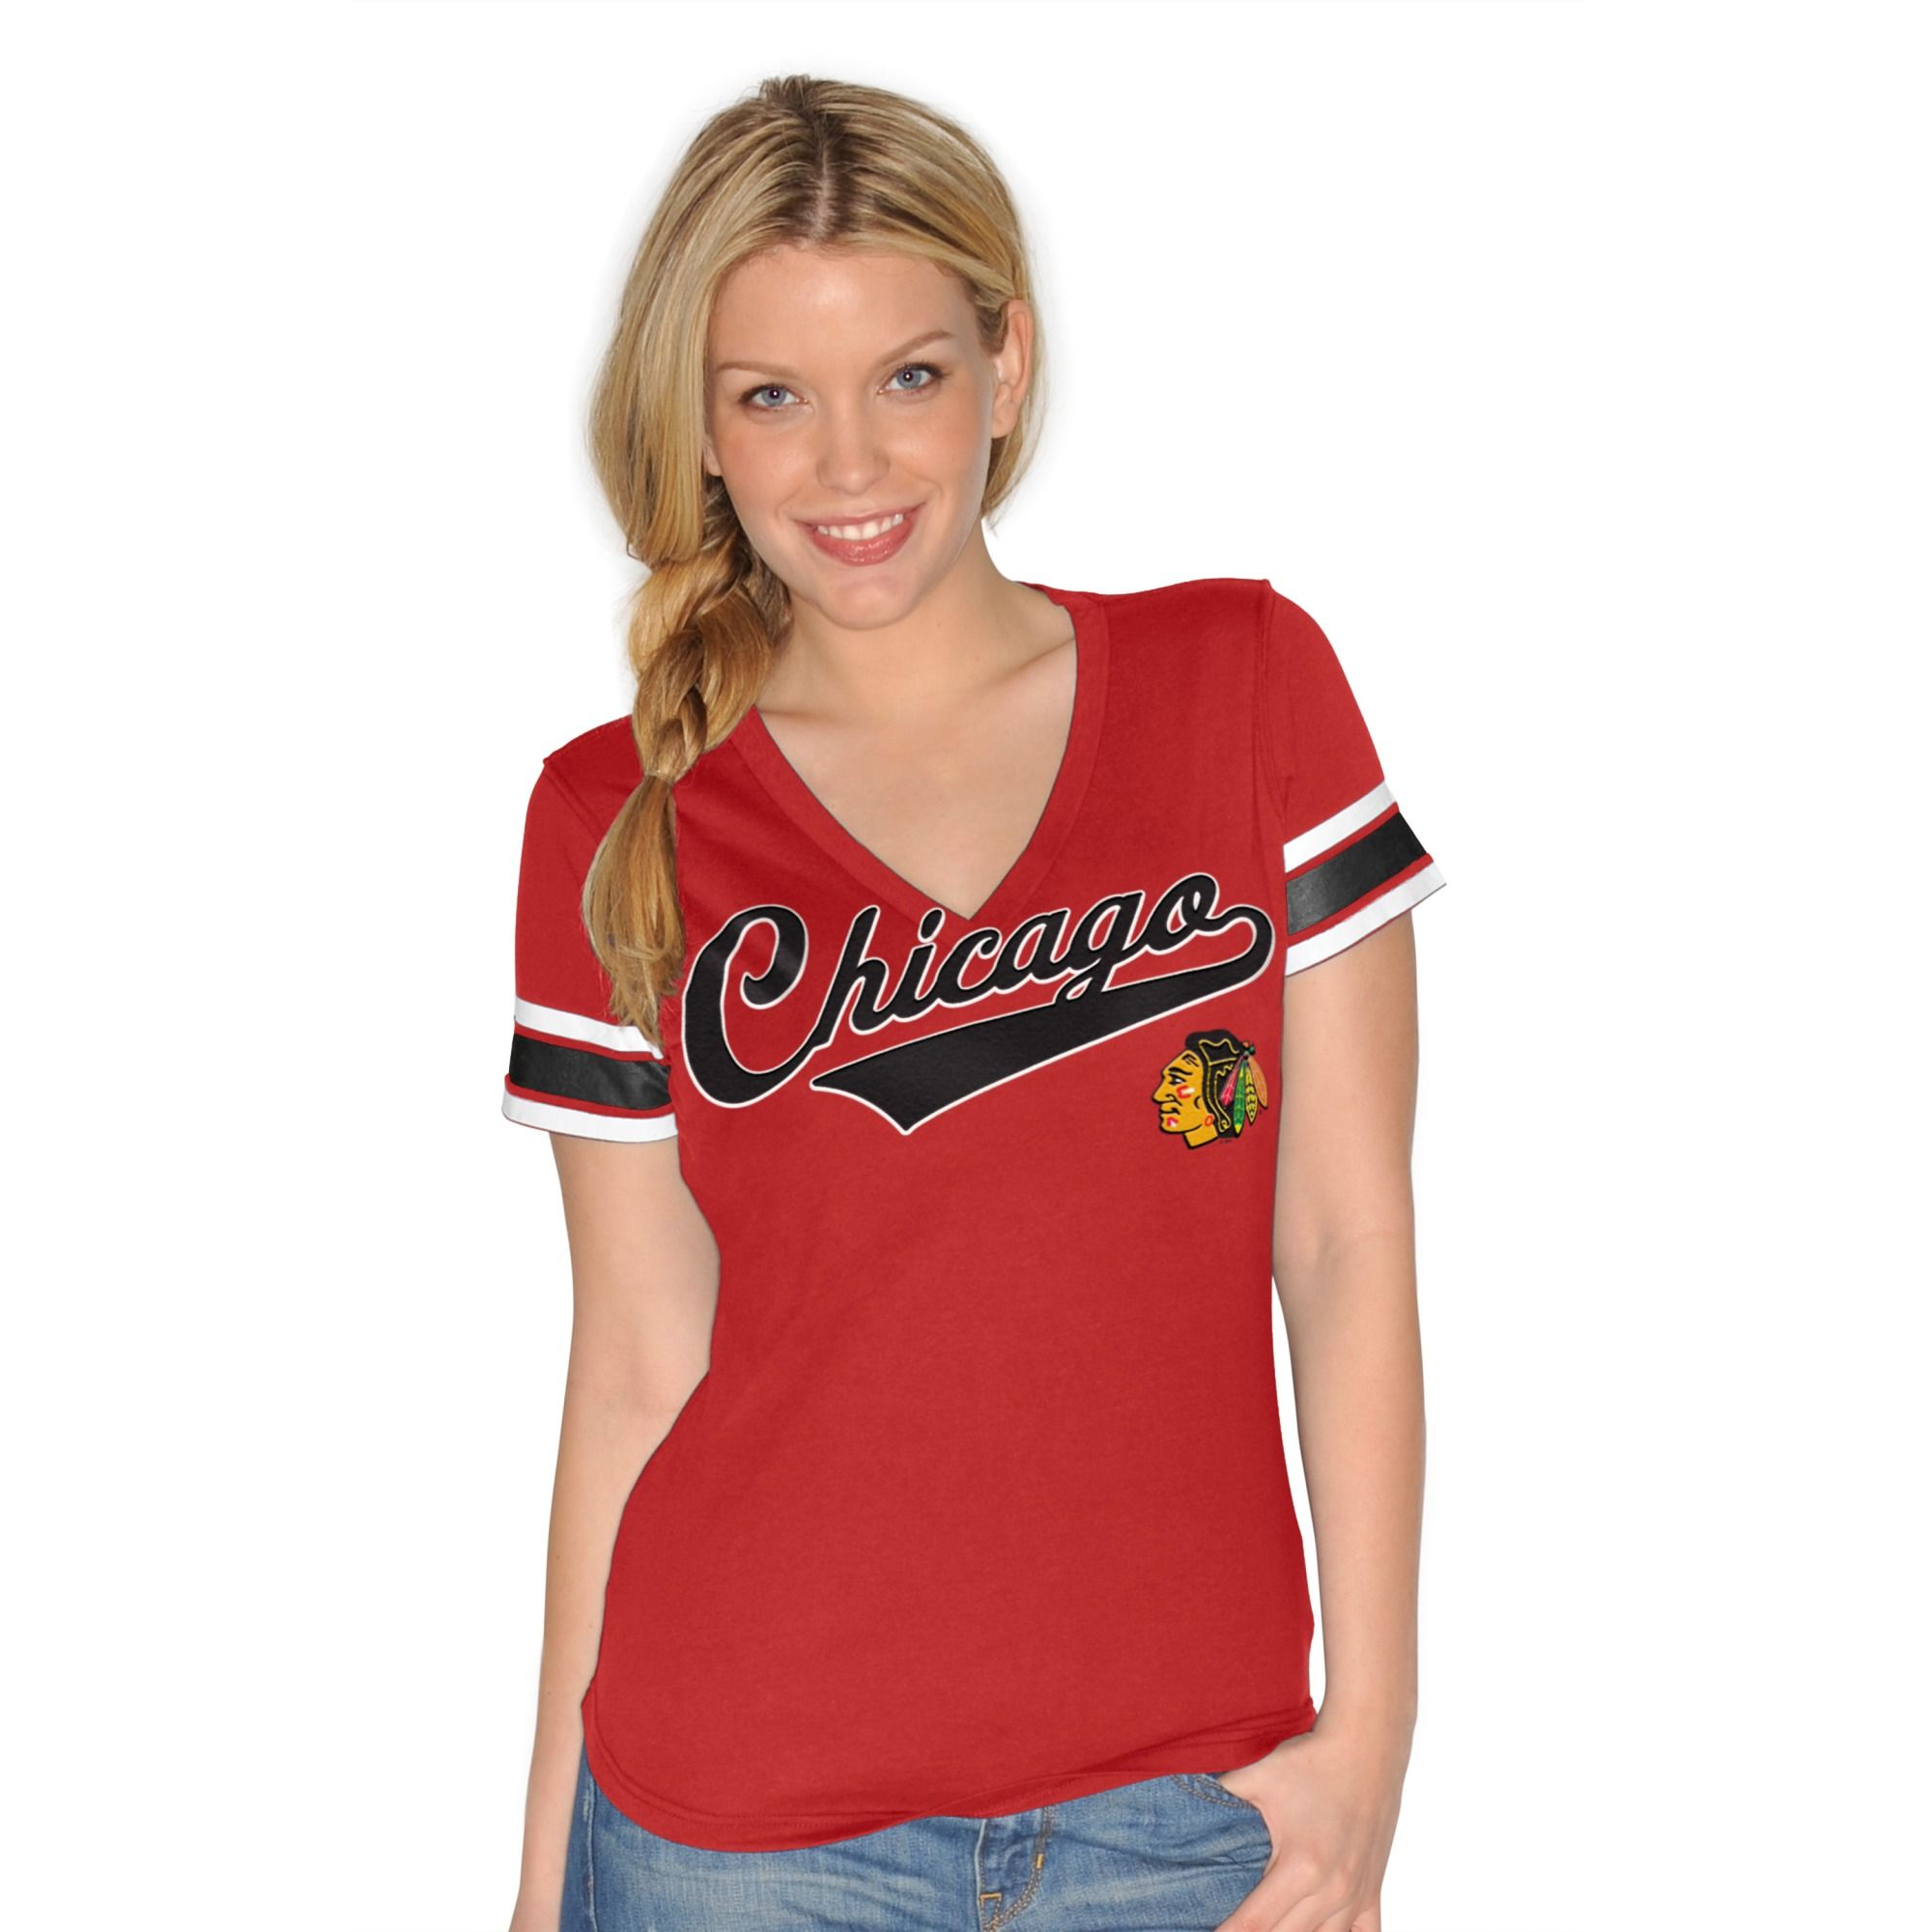 Chicago Blackhawks Red Ladies V-Neck Jersey Shirt by G-III 4Her ... 52f1abf07